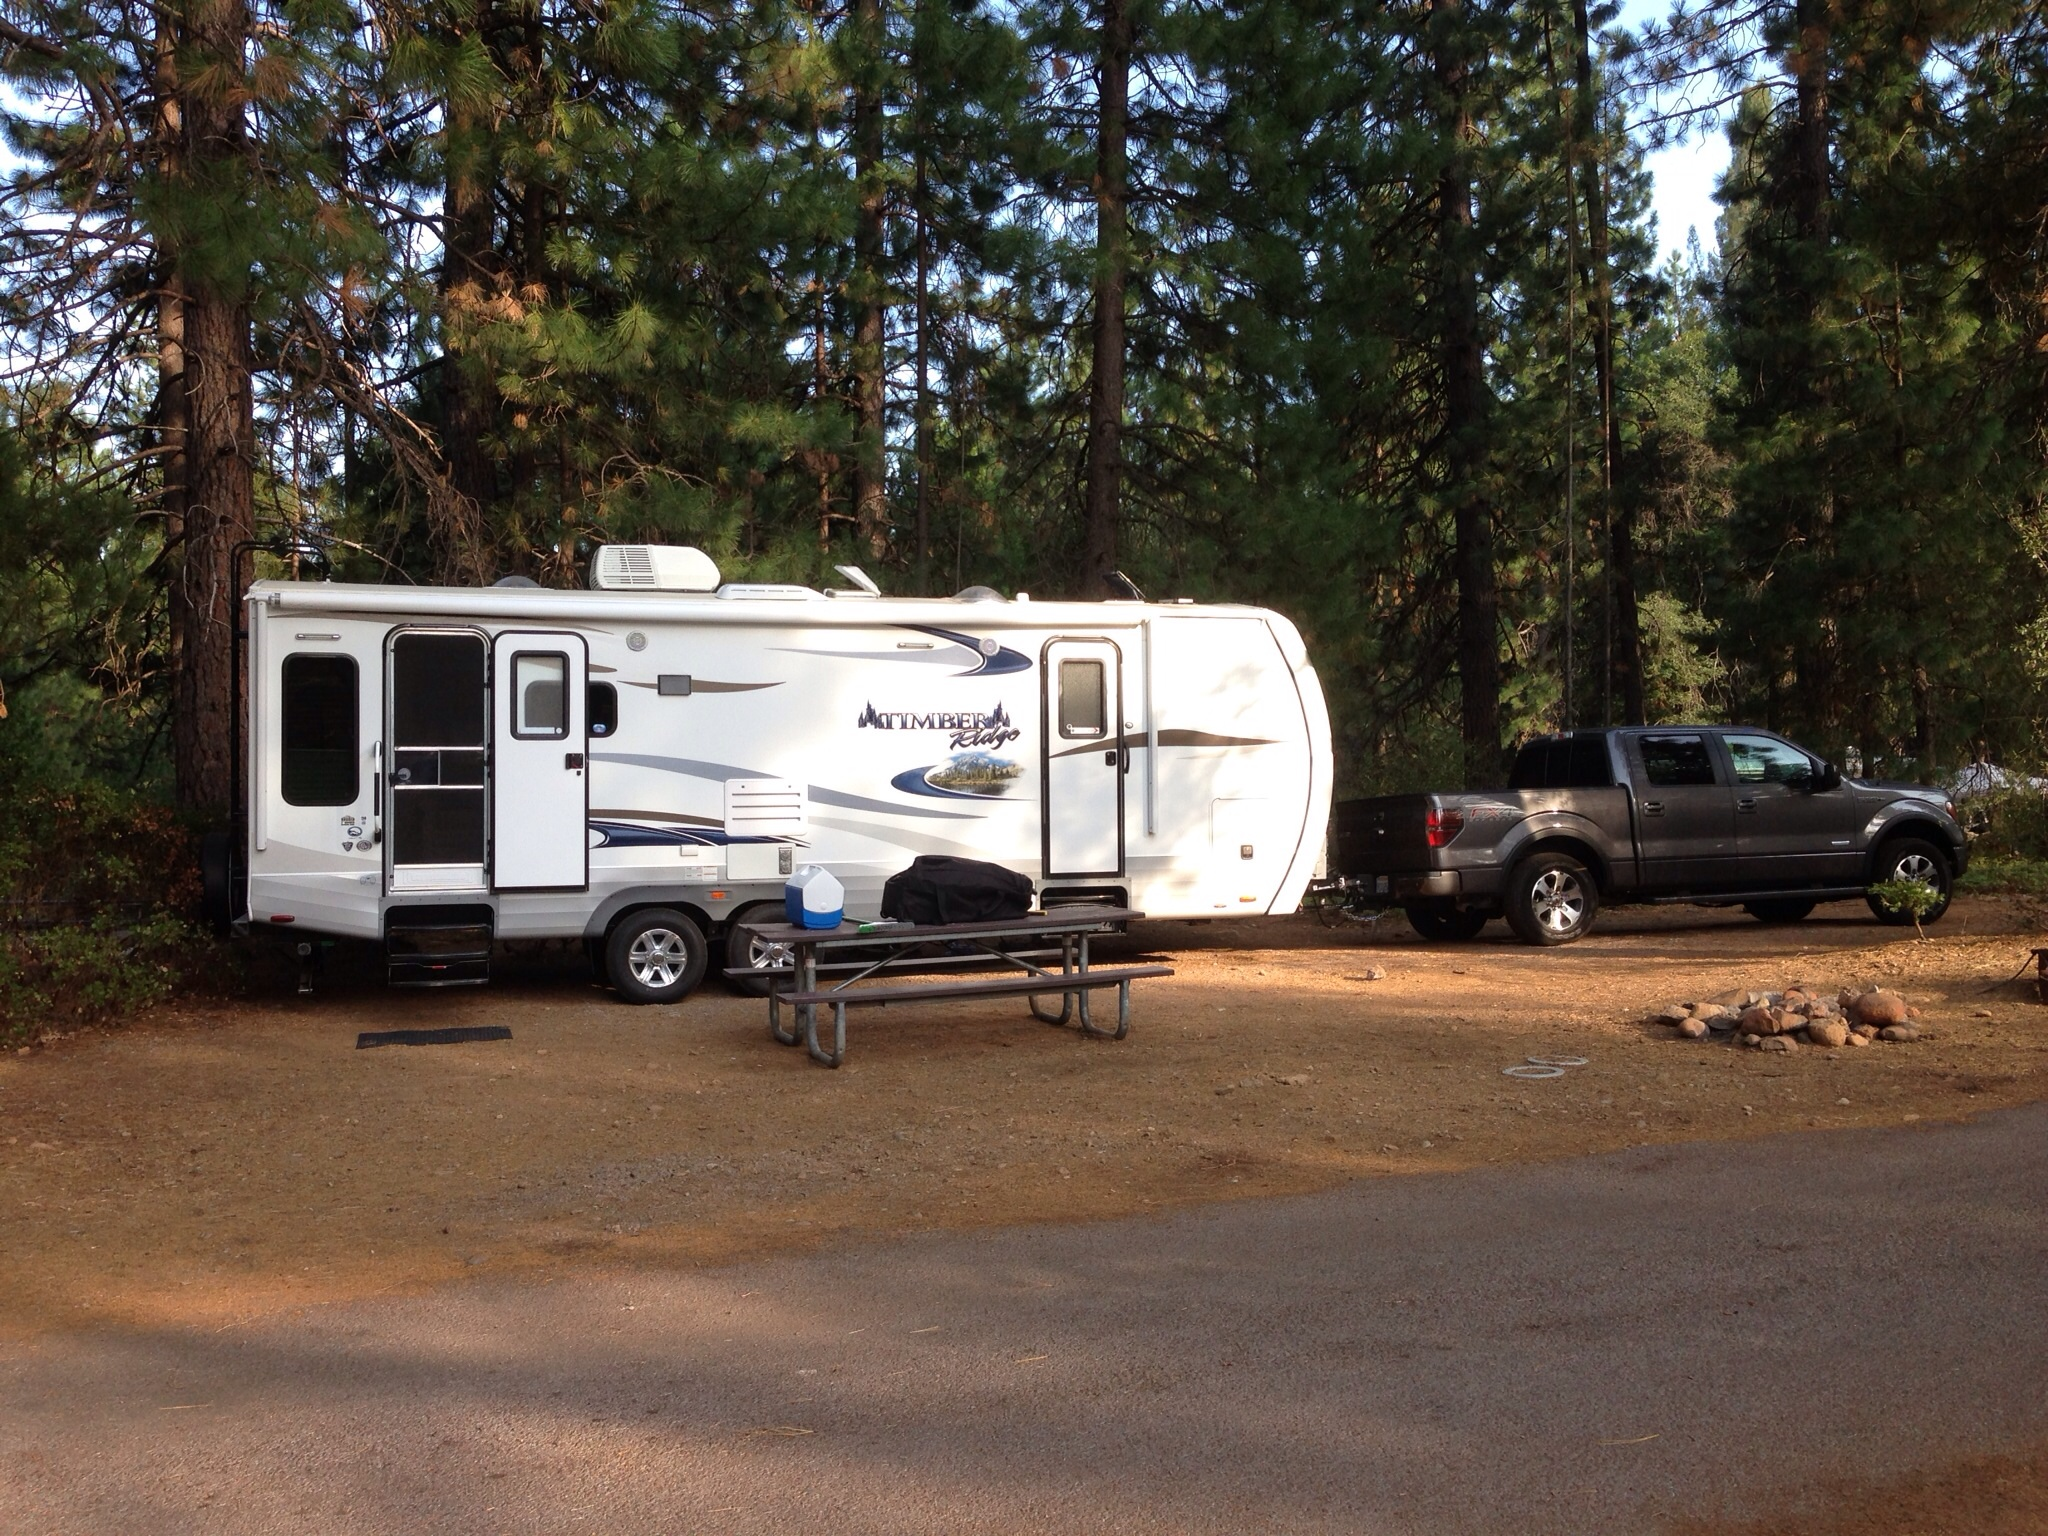 Mount shasta rv parks reviews and photos for Lake siskiyou resort cabins